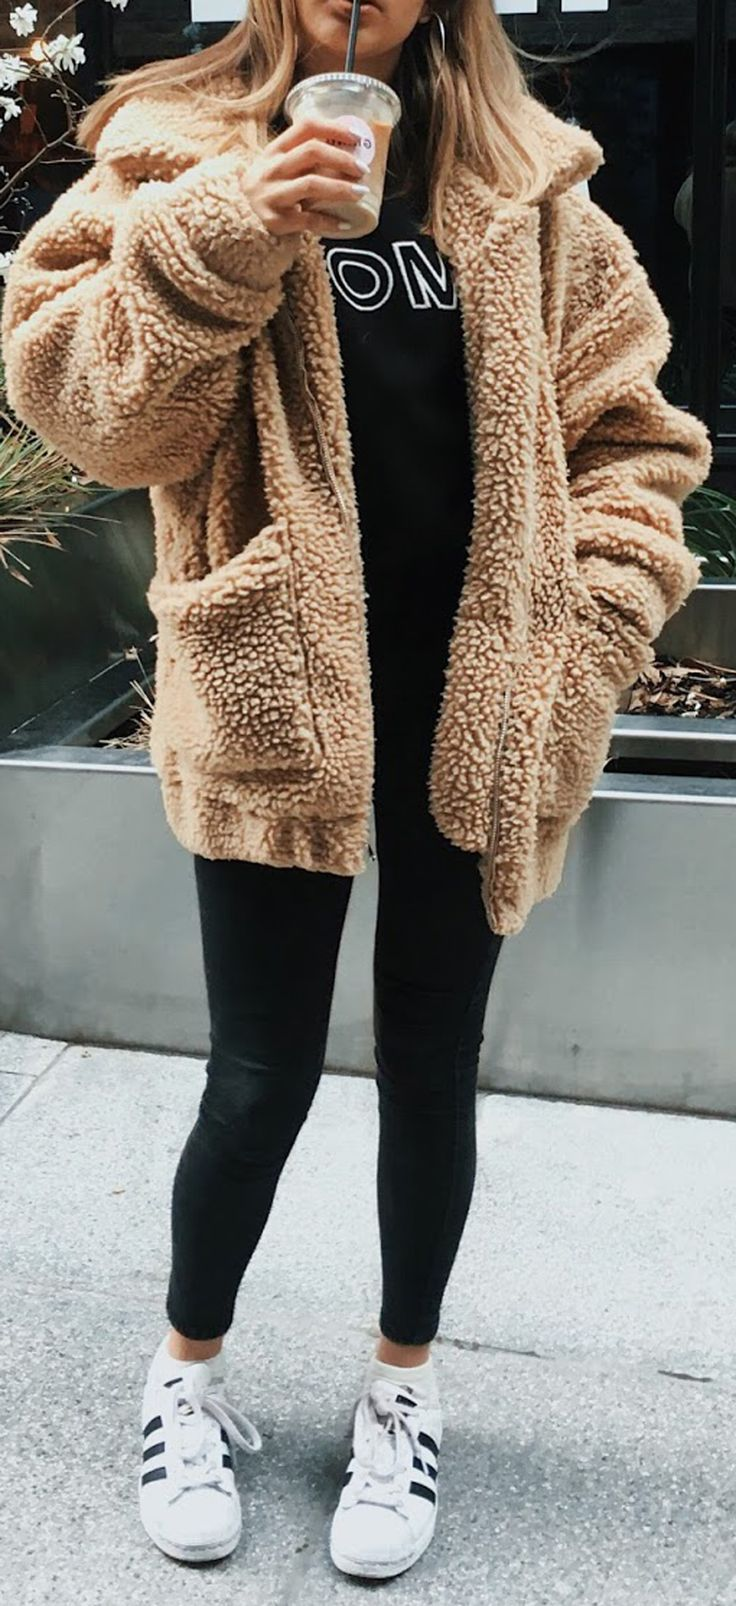 Photo of Cute Cozy Warm Fall Back to School Outfit Ideas for Teens for College Aurora Po